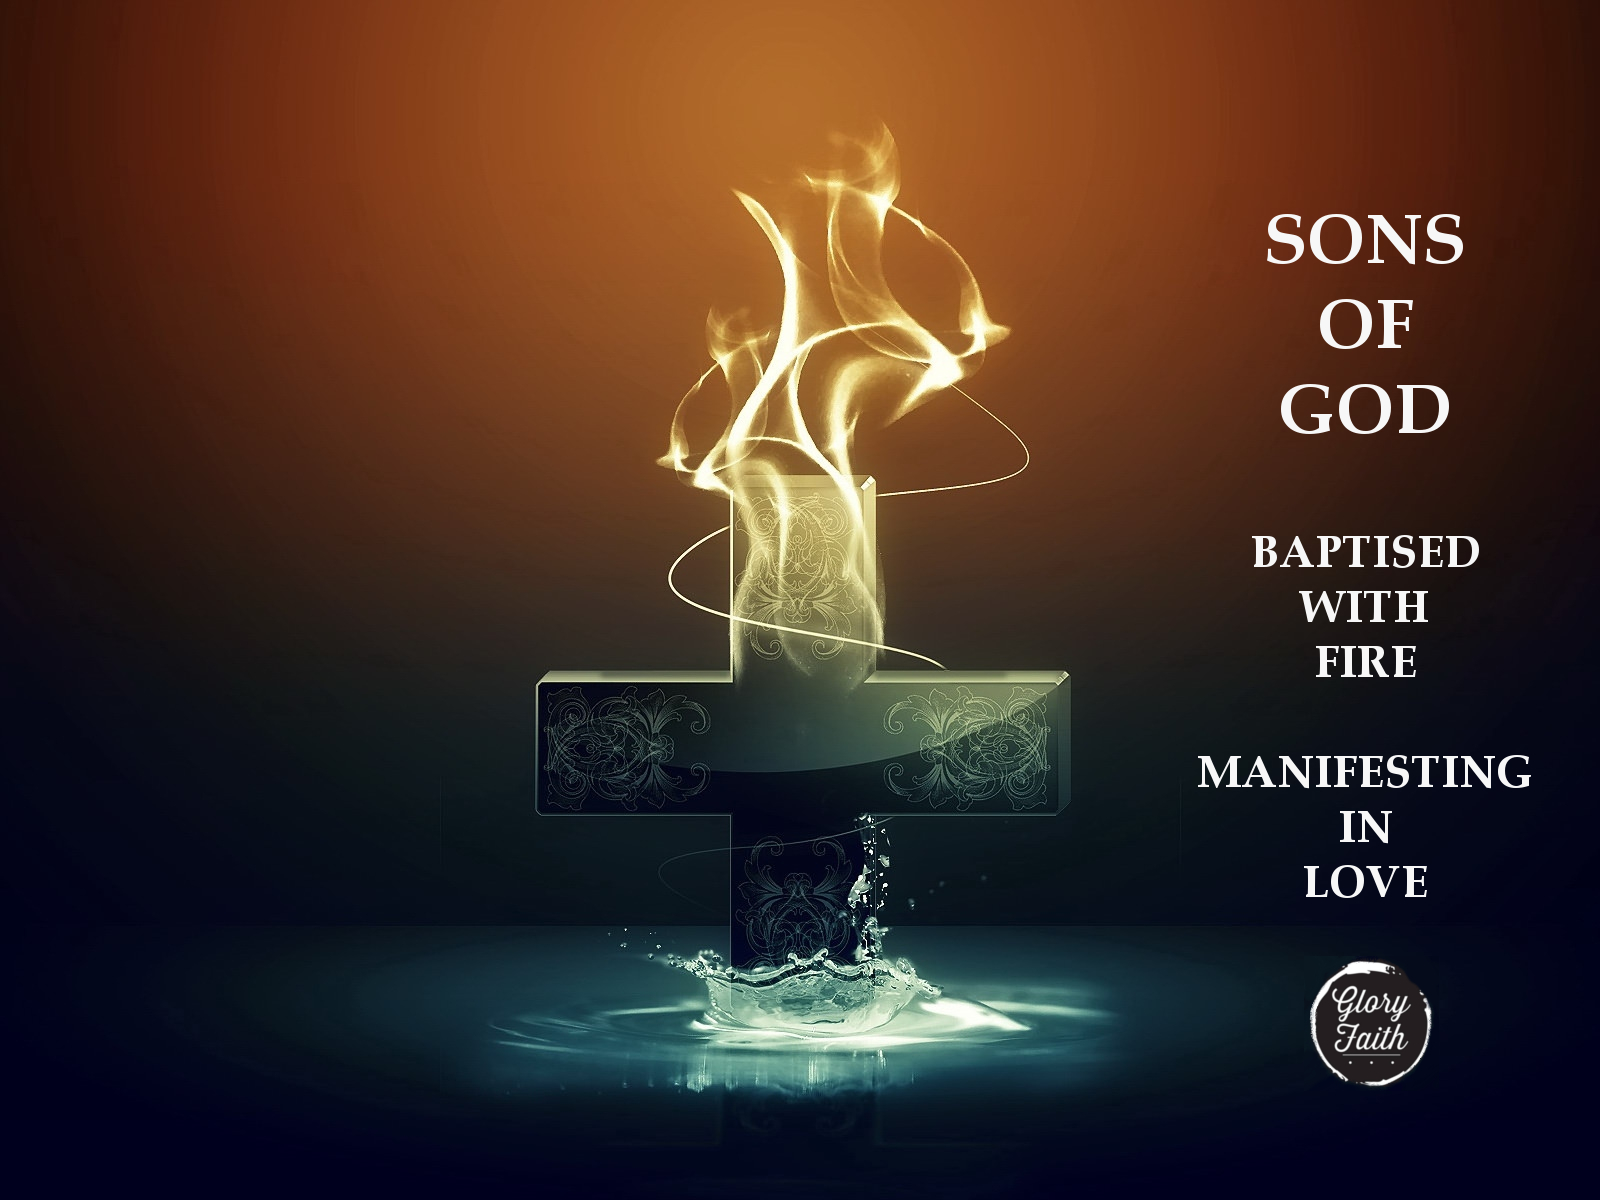 Sons of God made Manifest- Glory Faith